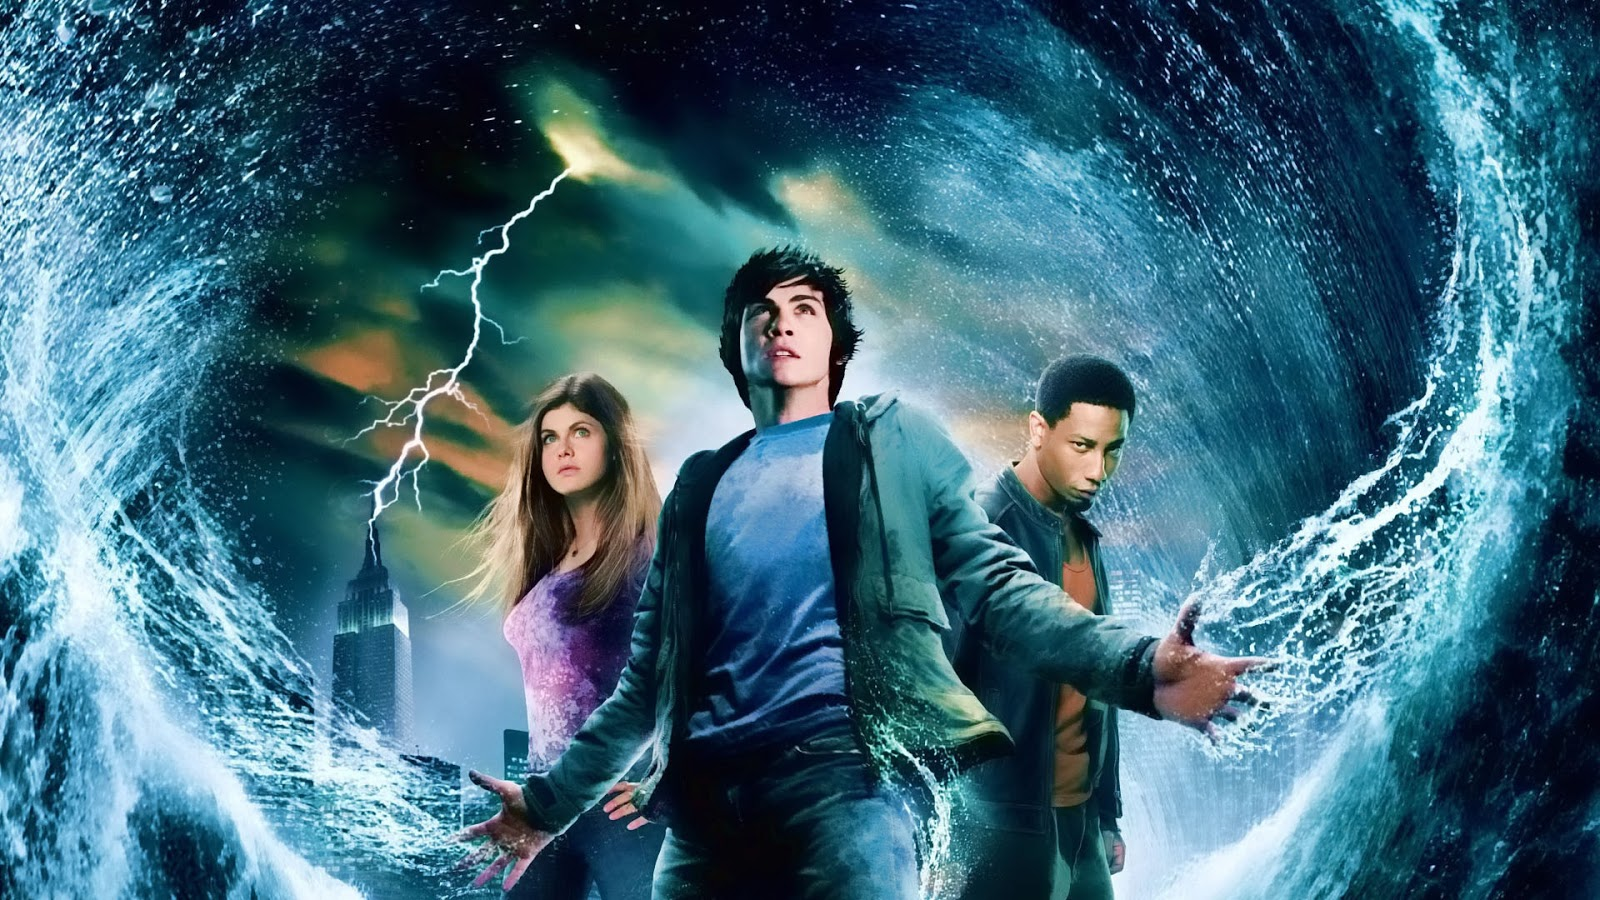 Shakaama live movie review percy jackson and the olympians the percy jackson movie review izmirmasajfo